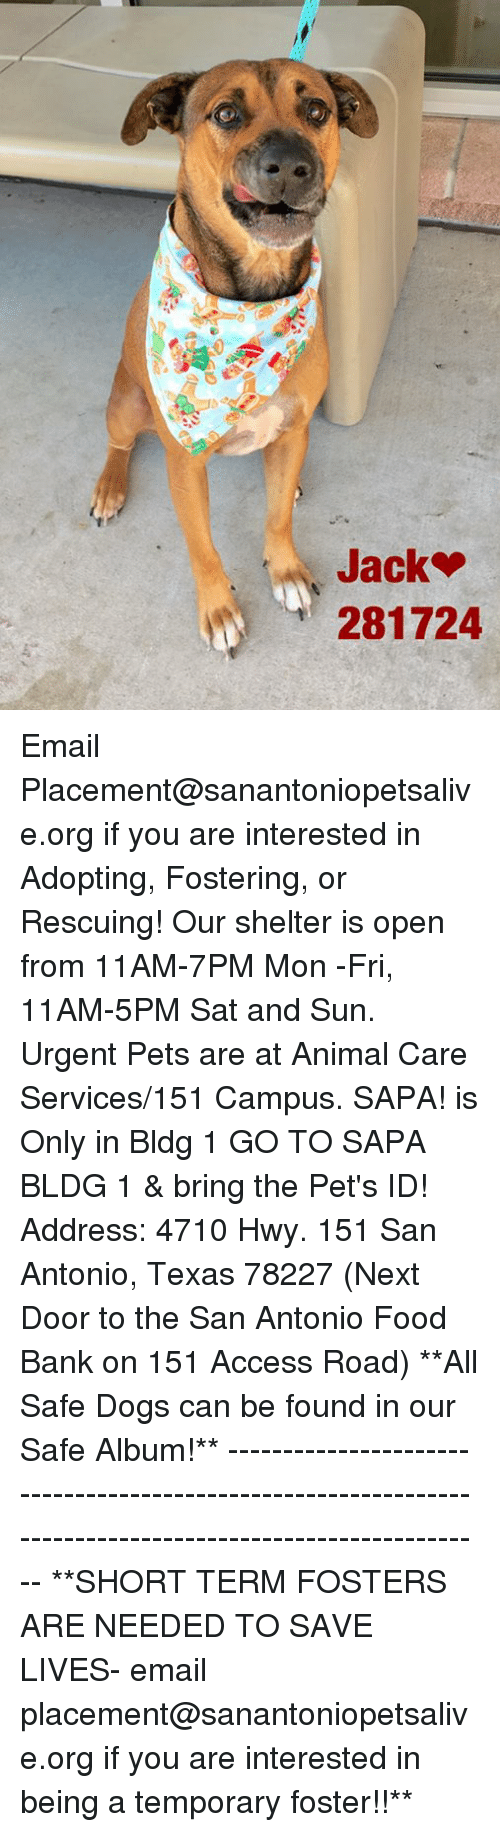 Dogs, Food, and Memes: 281724 Email Placement@sanantoniopetsalive.org if you are interested in Adopting, Fostering, or Rescuing!  Our shelter is open from 11AM-7PM Mon -Fri, 11AM-5PM Sat and Sun.  Urgent Pets are at Animal Care Services/151 Campus. SAPA! is Only in Bldg 1 GO TO SAPA BLDG 1 & bring the Pet's ID! Address: 4710 Hwy. 151 San Antonio, Texas 78227 (Next Door to the San Antonio Food Bank on 151 Access Road)  **All Safe Dogs can be found in our Safe Album!** ---------------------------------------------------------------------------------------------------------- **SHORT TERM FOSTERS ARE NEEDED TO SAVE LIVES- email placement@sanantoniopetsalive.org if you are interested in being a temporary foster!!**